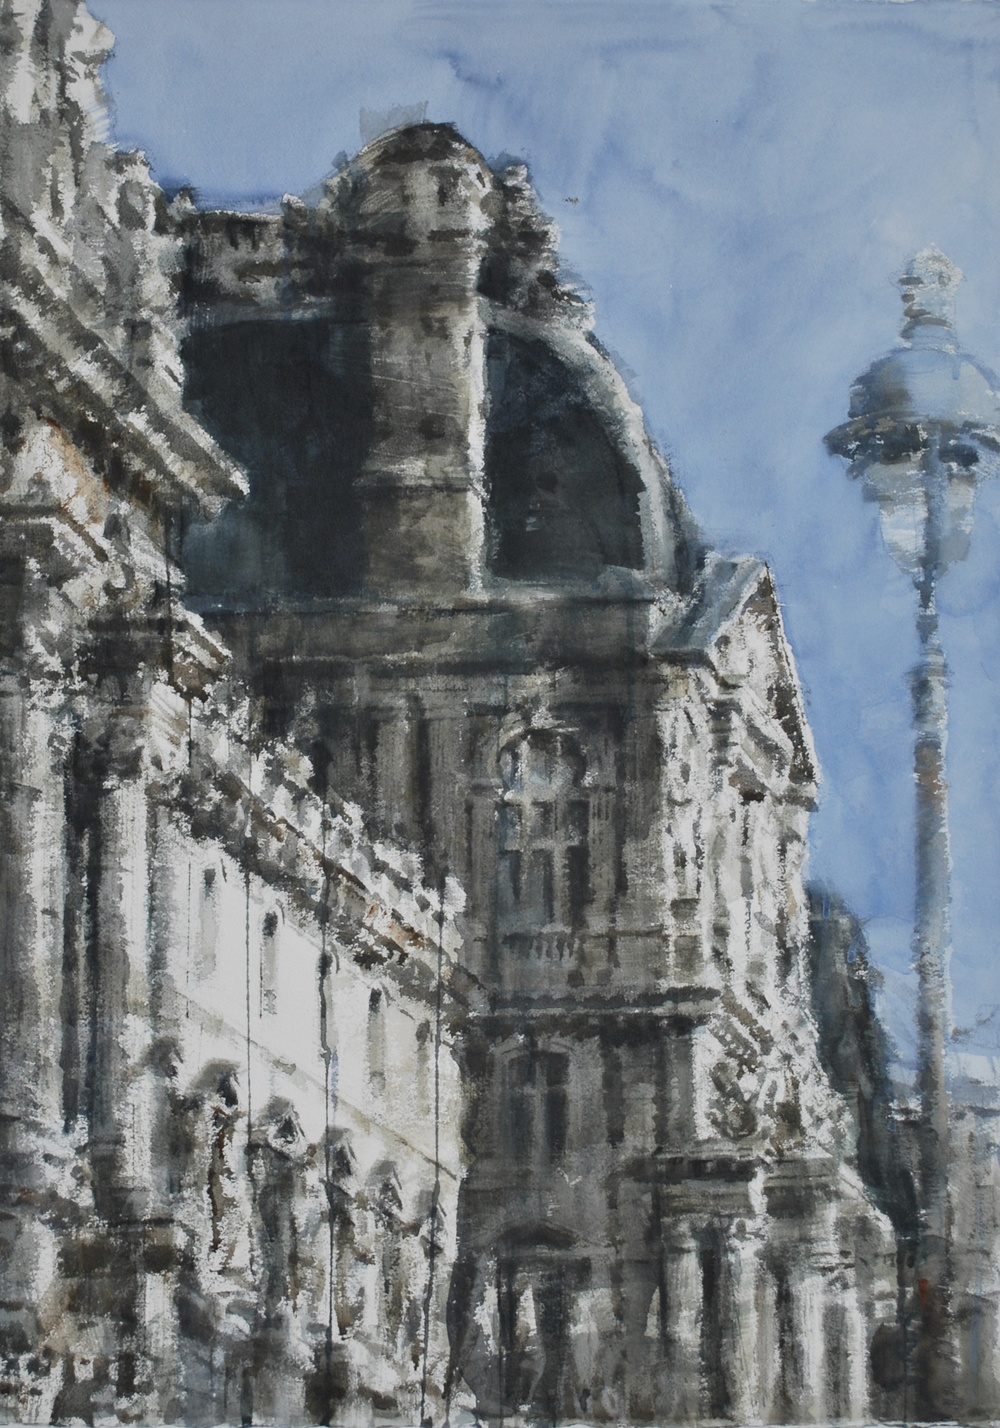 Rhythm of Light on Louvre IV, Paris, 29x41 inches